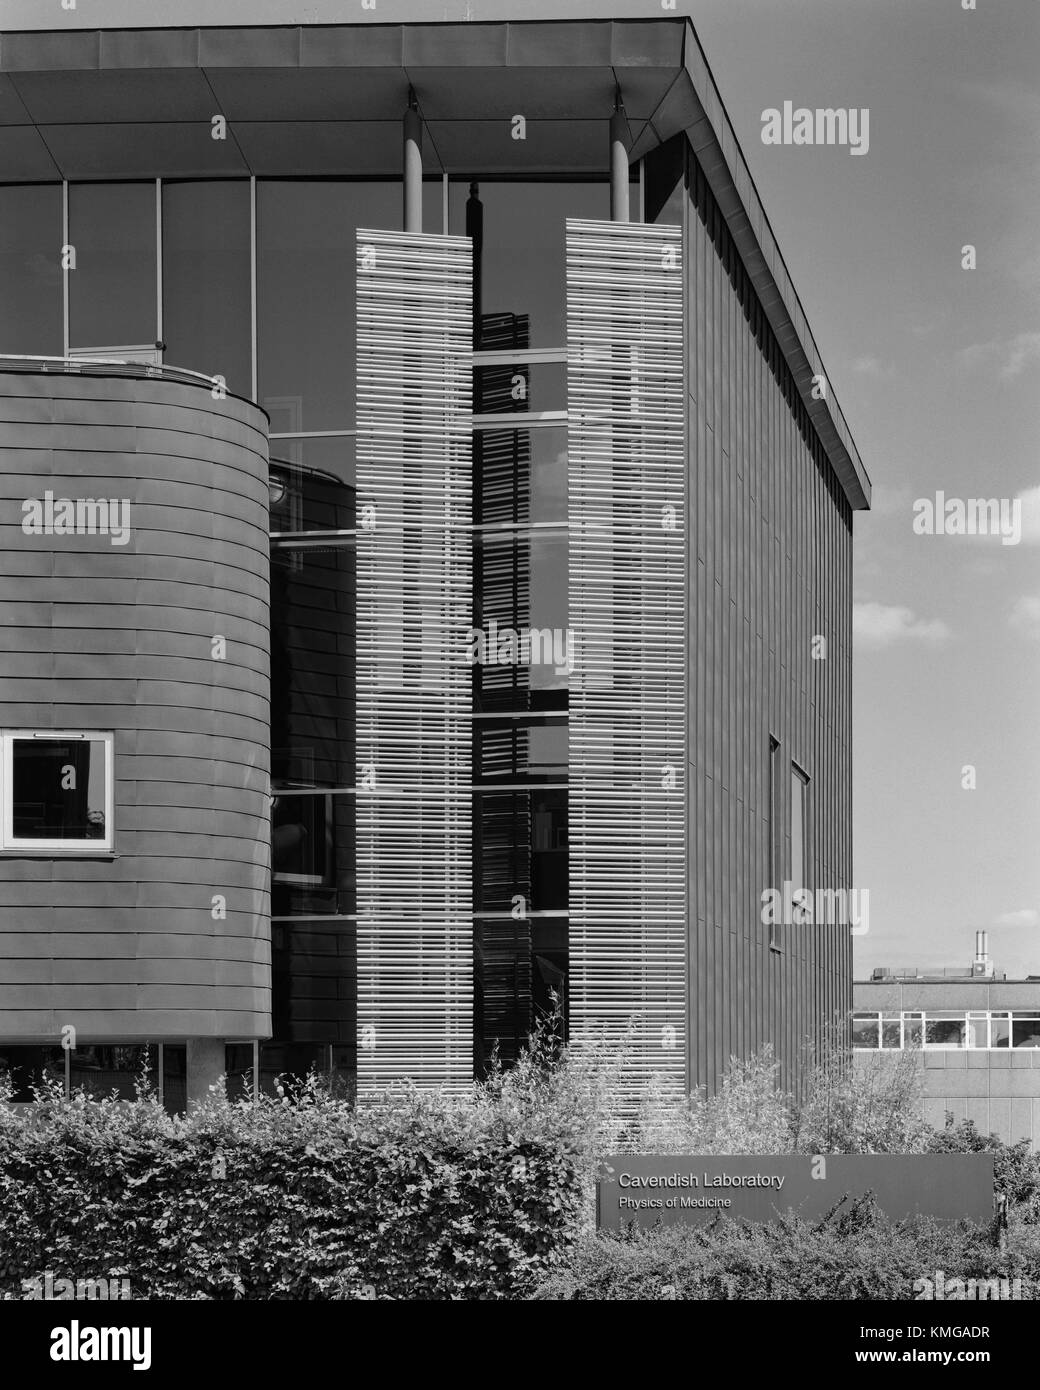 Cambridge University Physics of Medicine Building on the West Cambridge Site - Stock Image